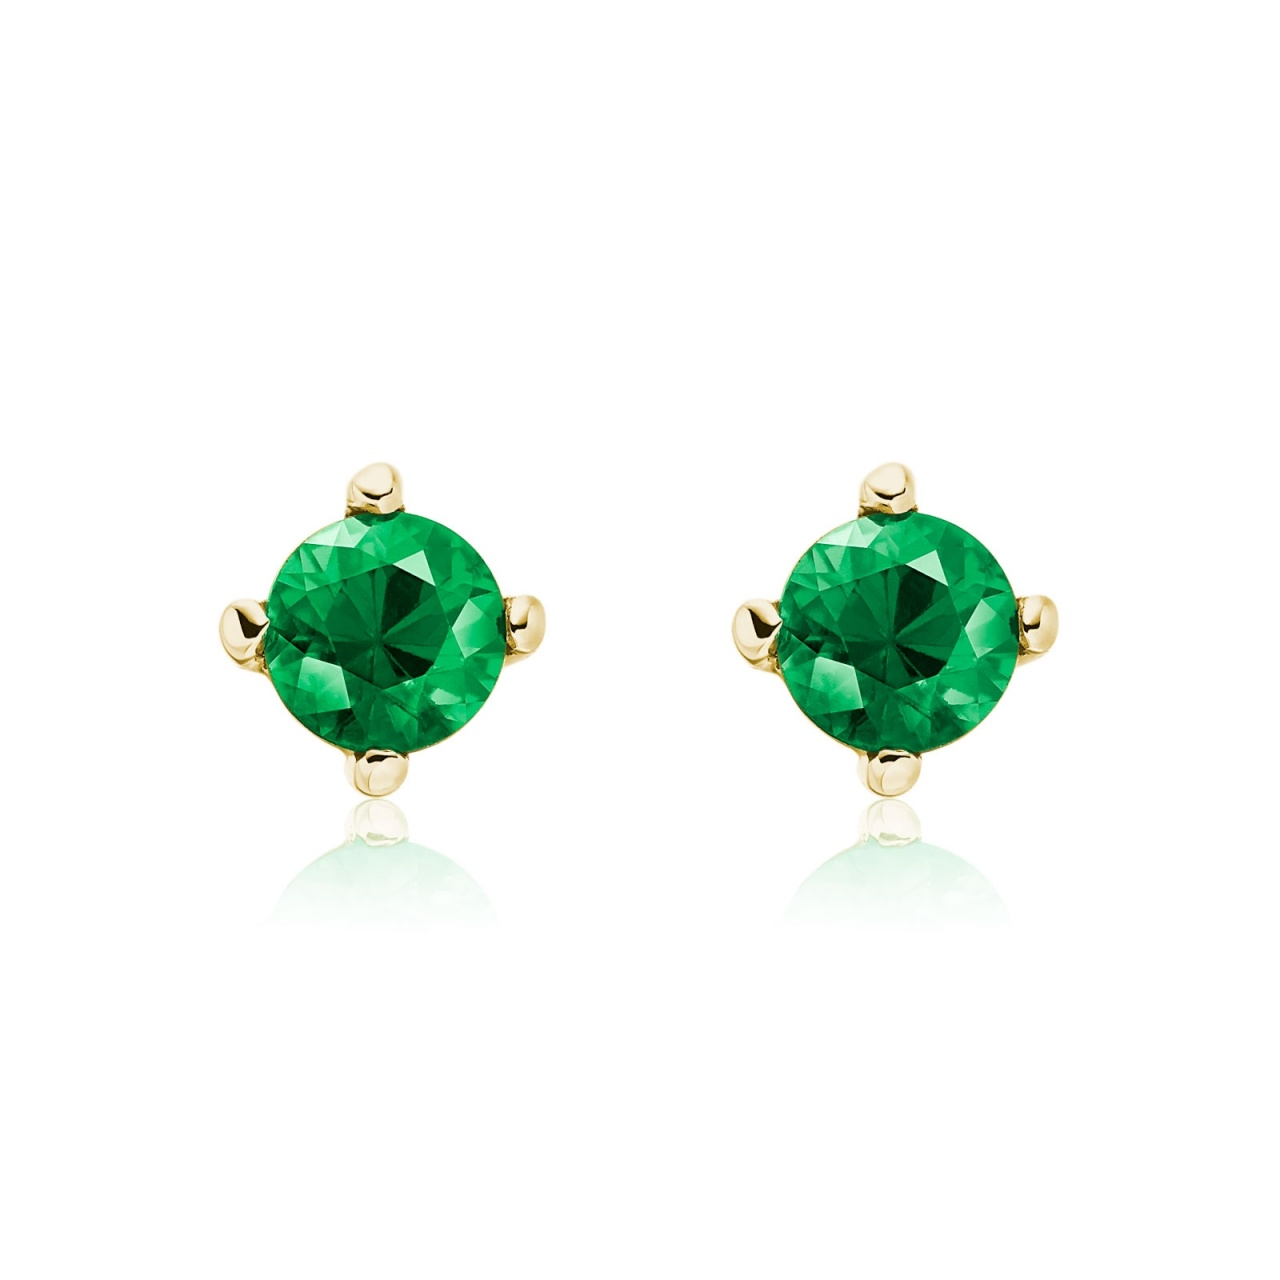 Emerald Studs in Yellow Gold with Akoya Pearls-AEWREM1312-1